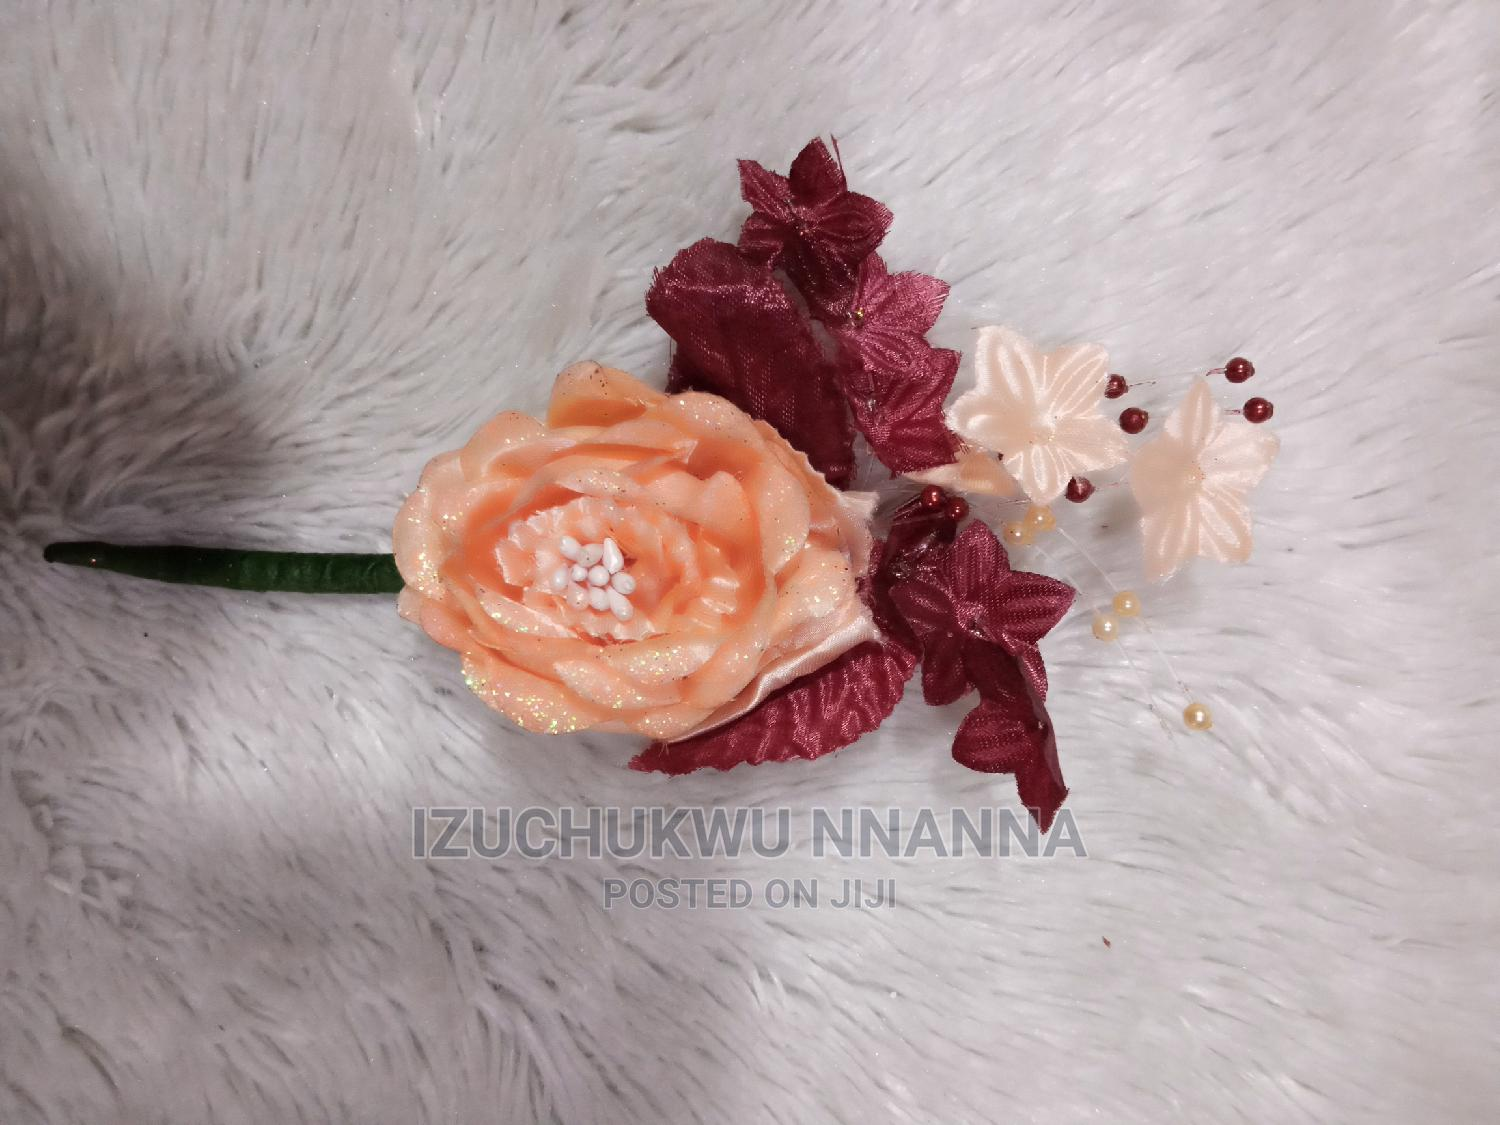 Archive: Quality Rose Available